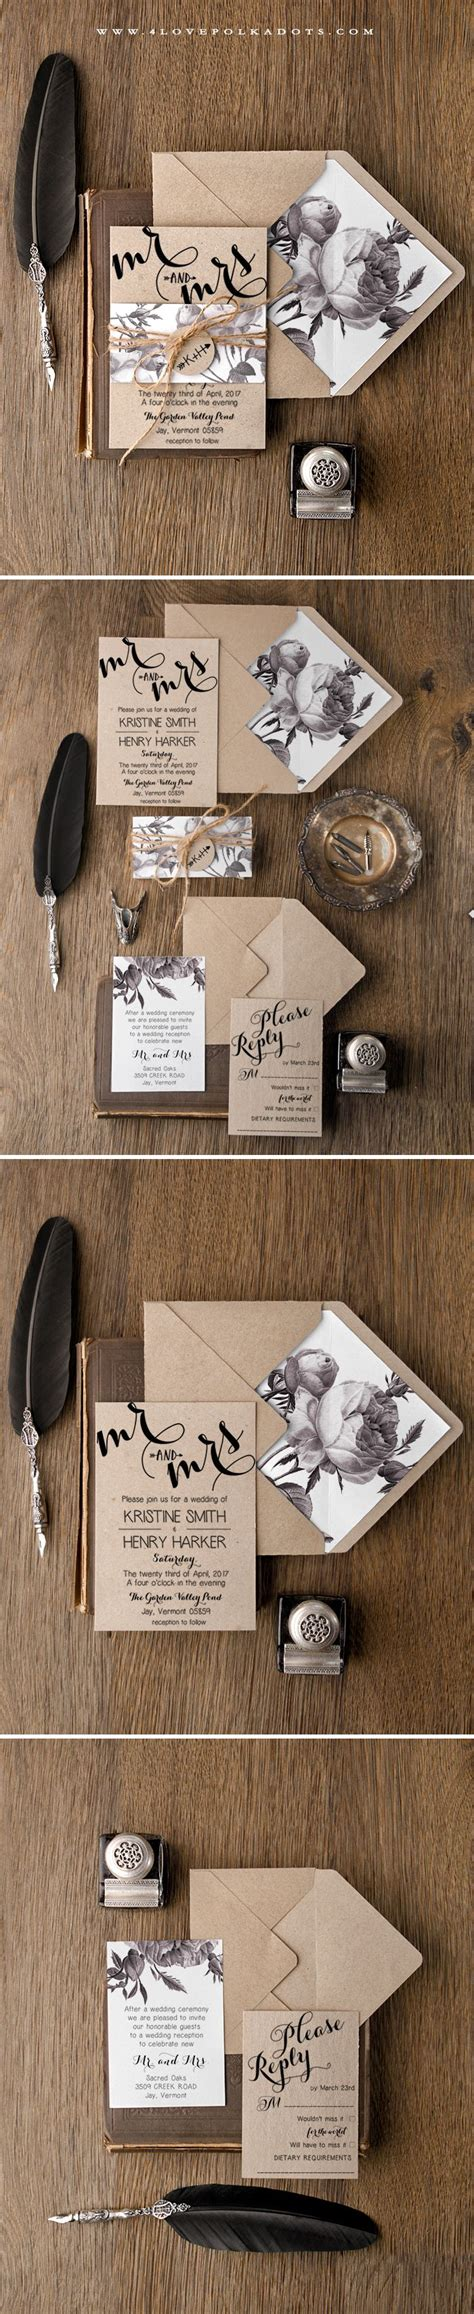 Wedding Invitations Handmade by 25 Best Ideas About Handmade Wedding Invitations On